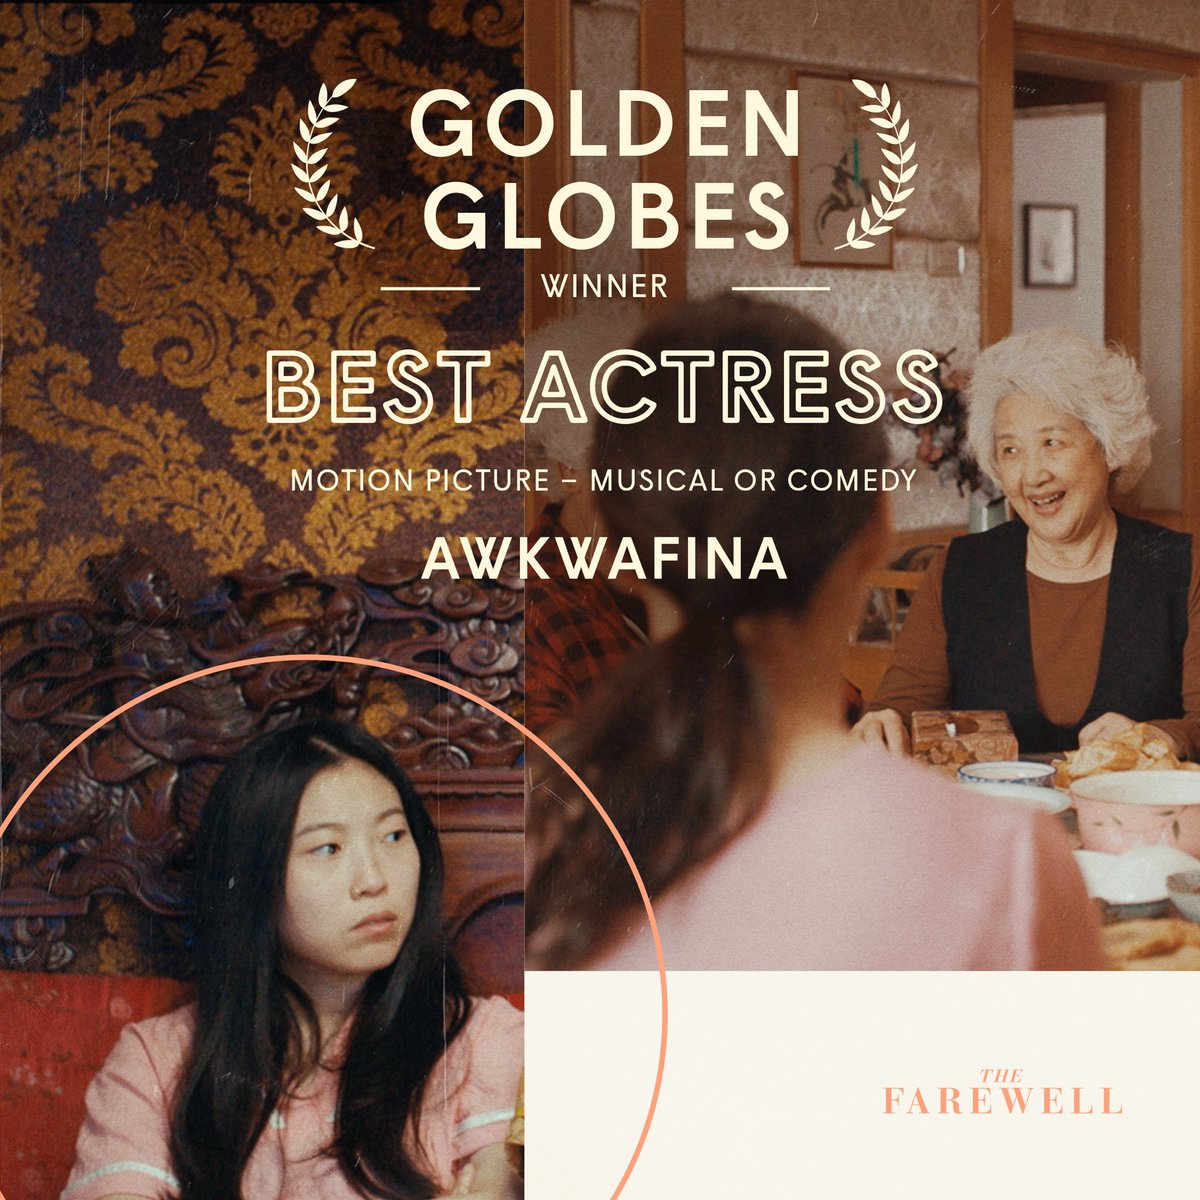 Best Actress. No Lie. Congratulations to @Awkwafina on the #GoldenGlobes WIN for #TheFarewell! 🎊💖